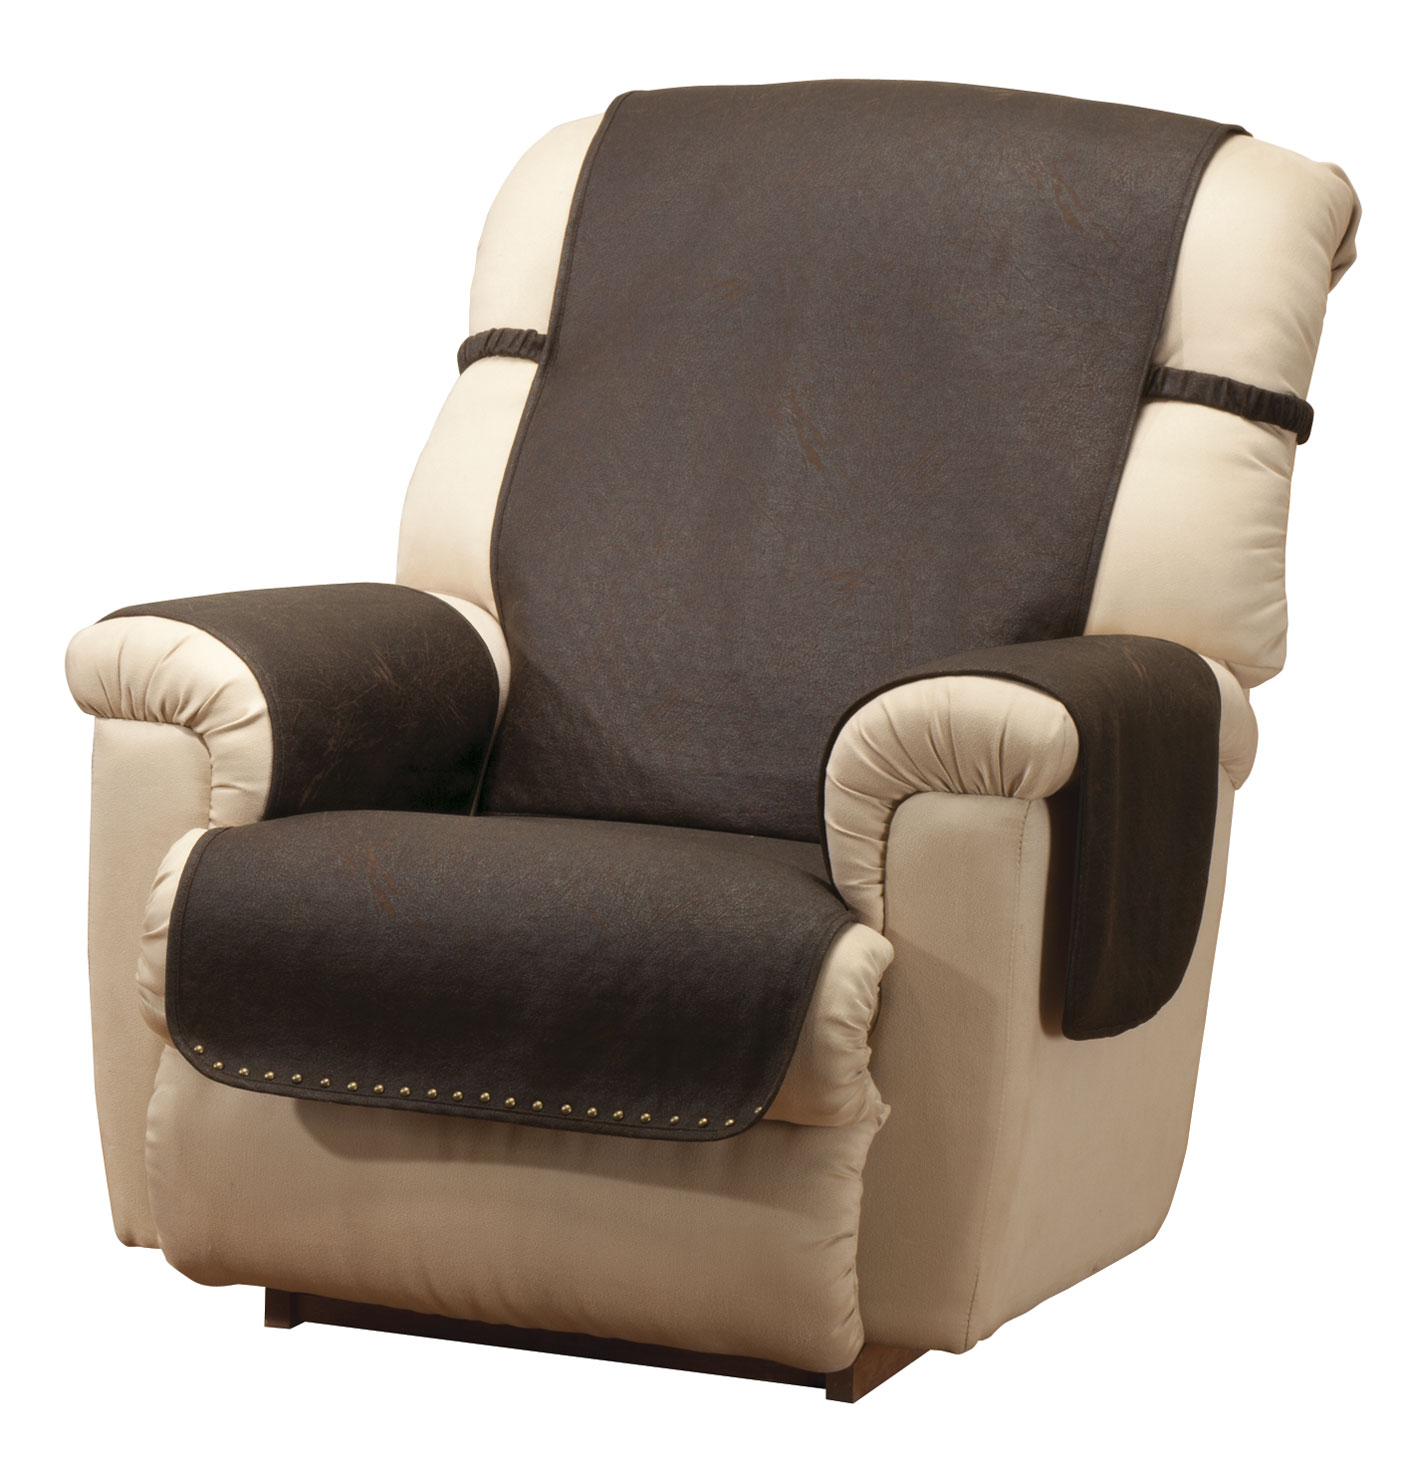 Leather Recliners At Walmart